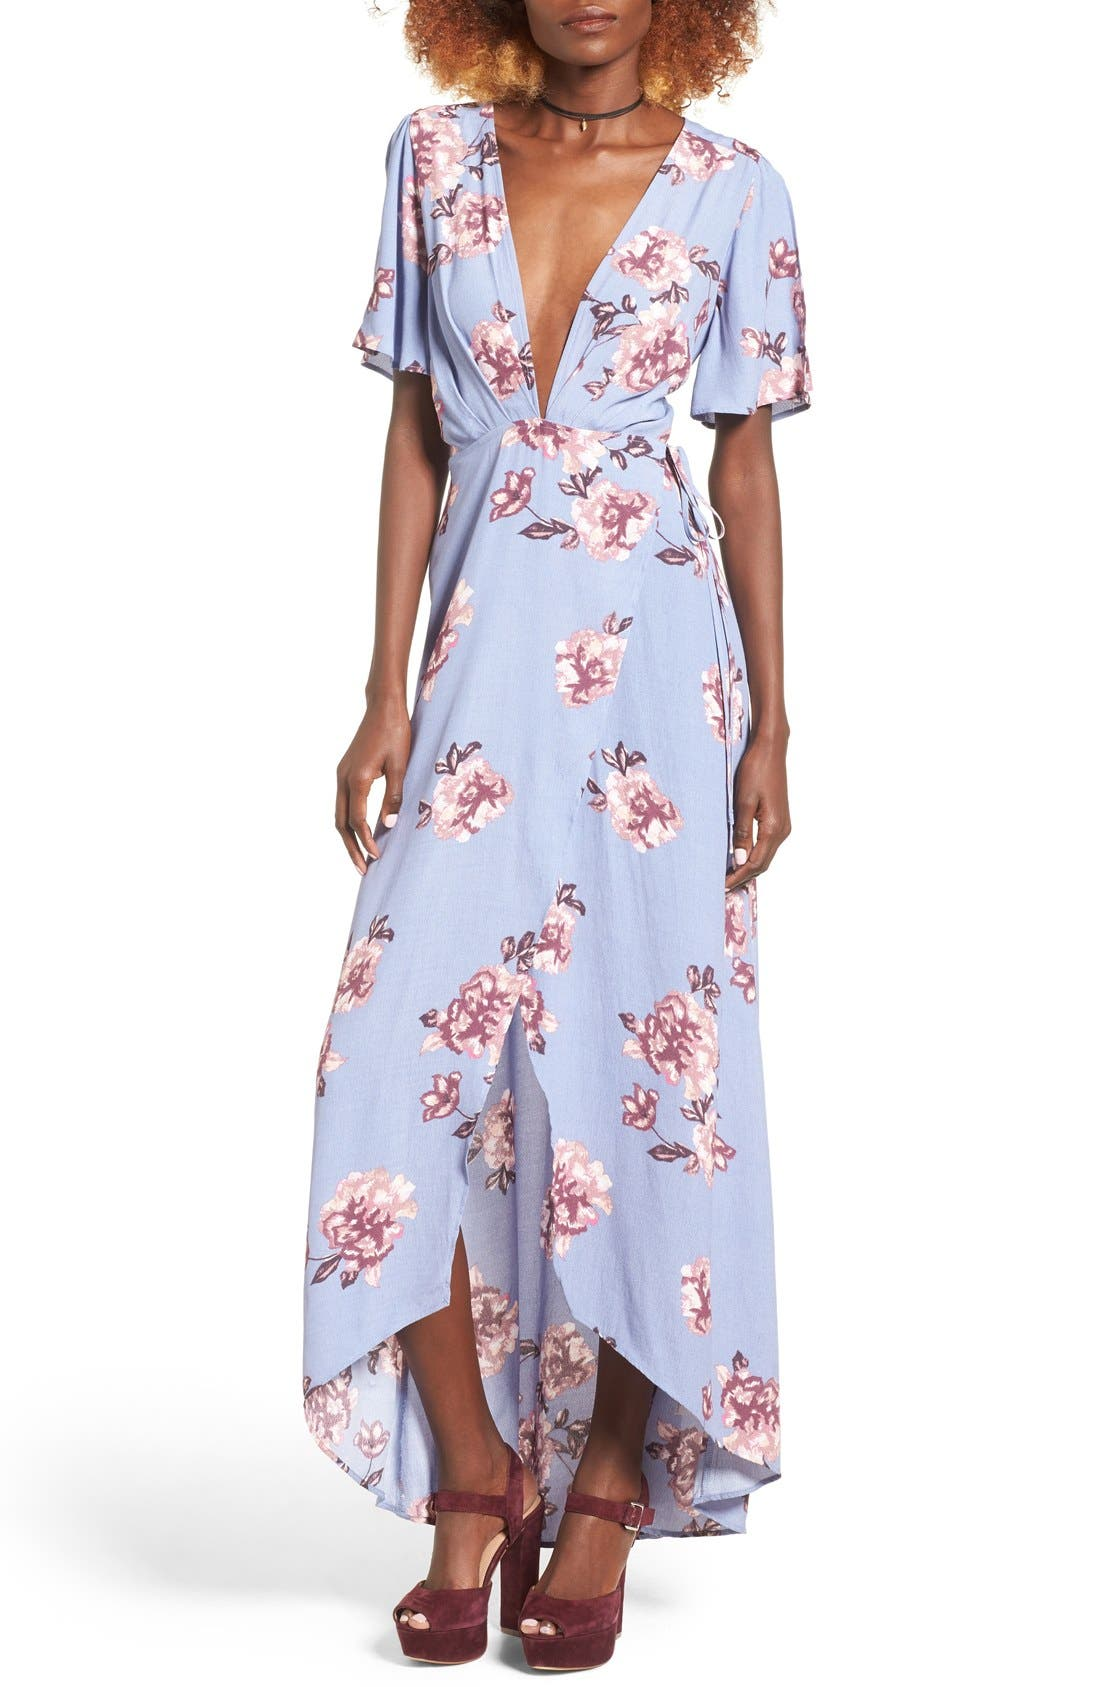 Alternate Image 1 Selected - ASTR Selma Floral Print Wrap Dress